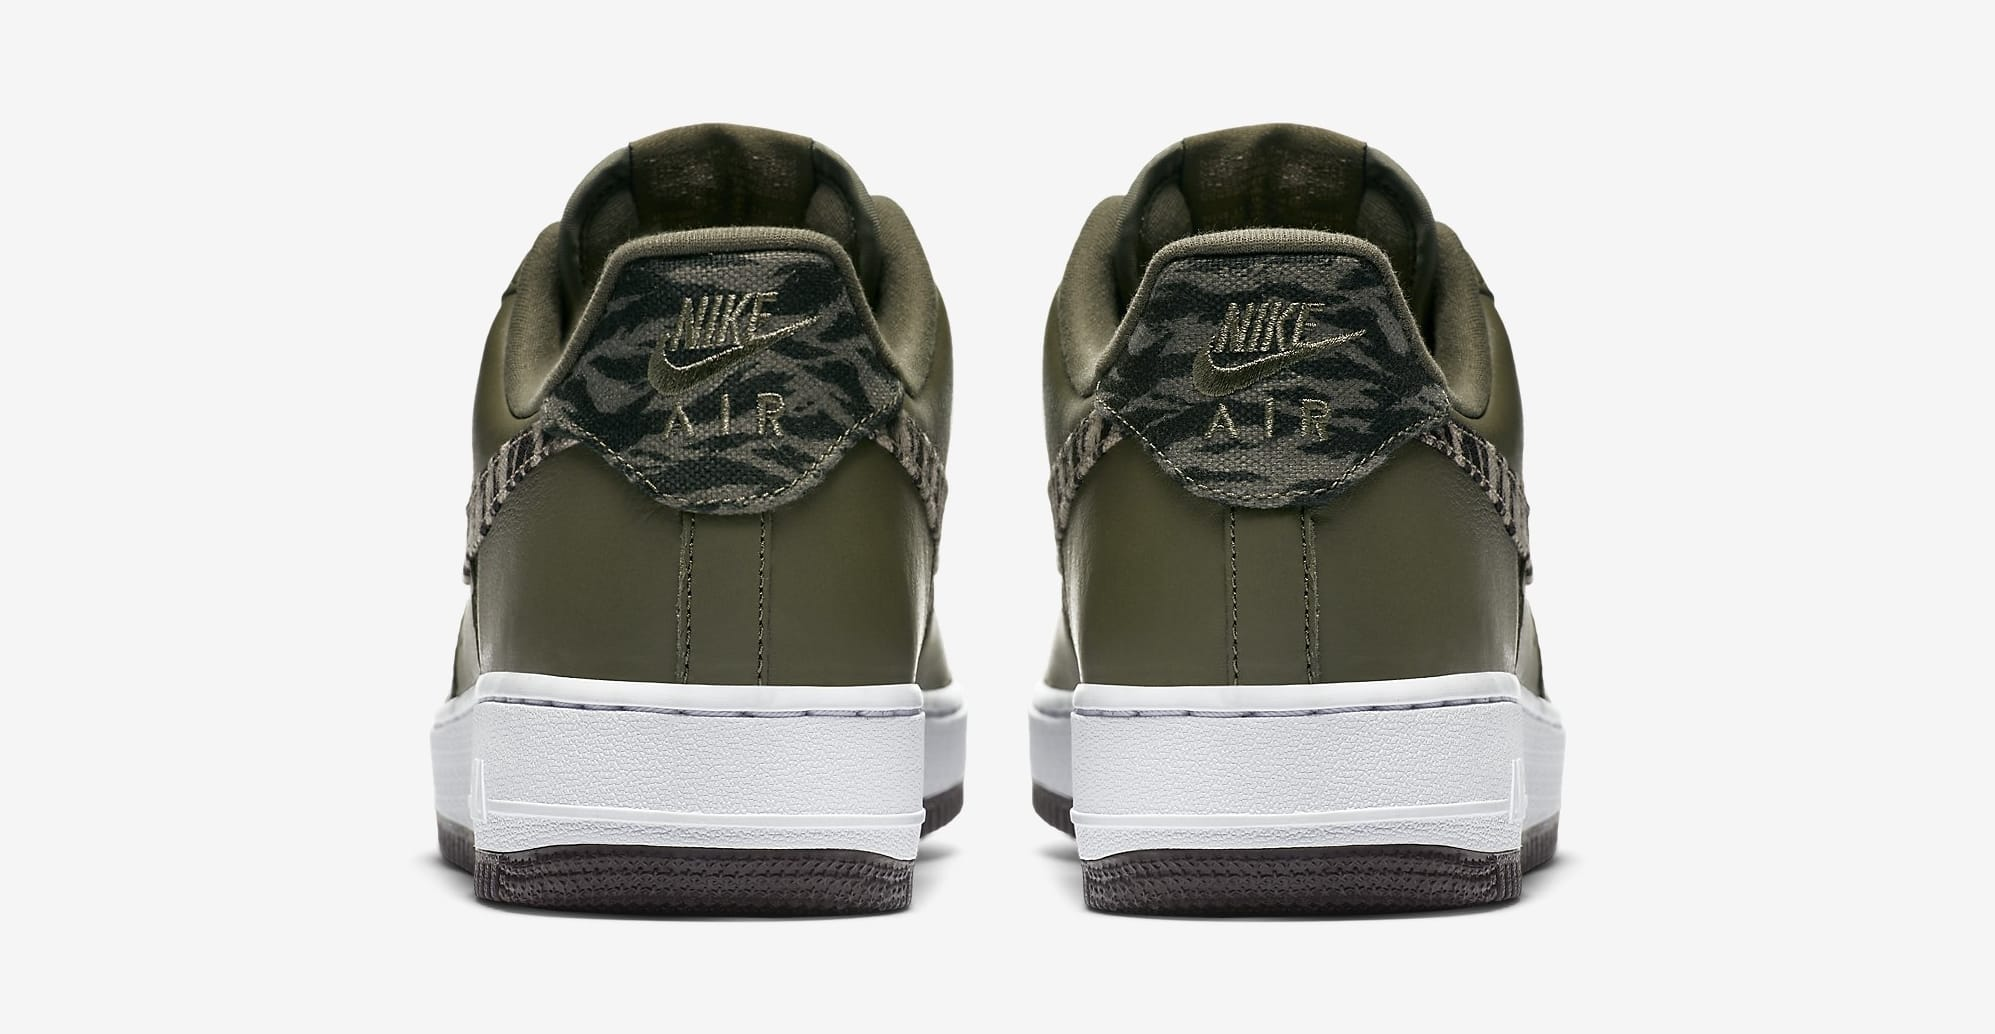 Nike Air Force 1 Low AQ4131-200 (Heel)